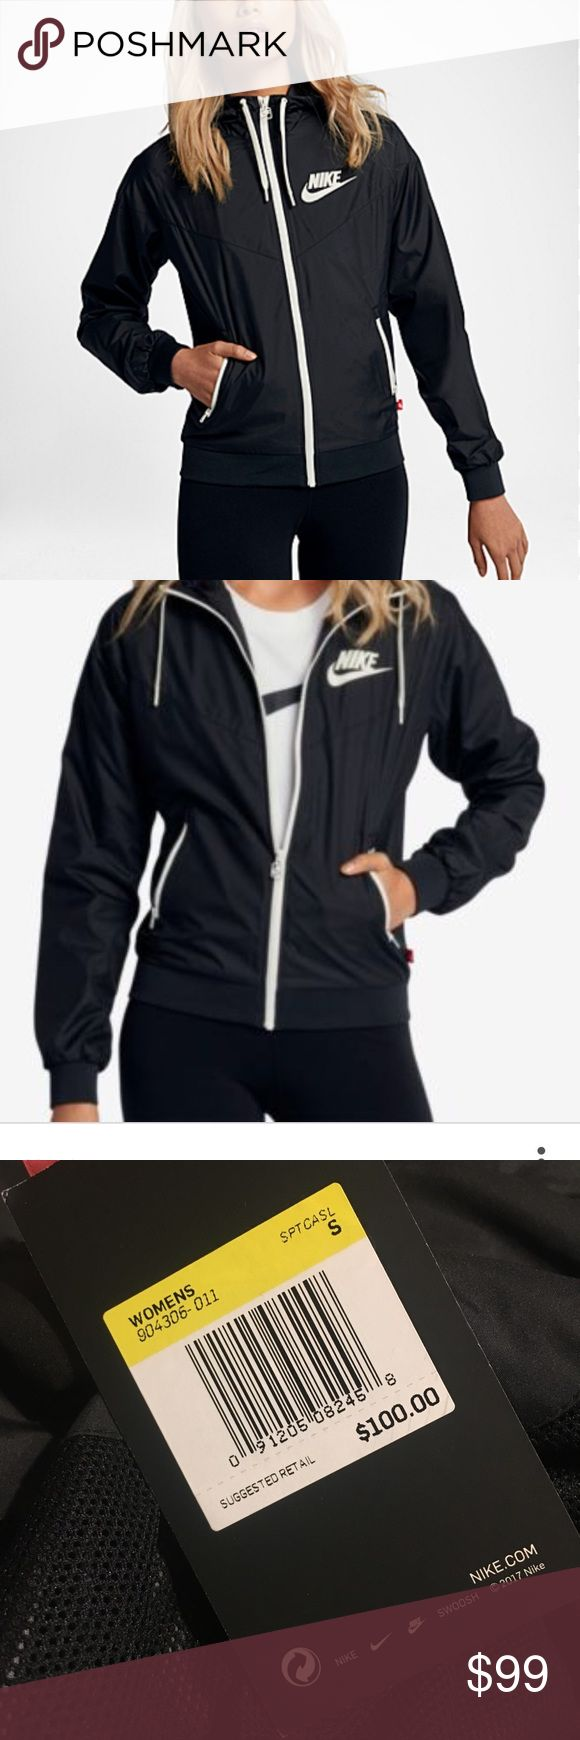 Nike Black Womens Windbreaker Small BNWT $100+ Brand new never worn no flaws, perfect!!! No offers!  Ask any questions! ✖️No trades. I ship same day/next day during the week 📦 NO OFFERS, this is the lowest price 🎊 Free gift with purchases over $50! Nike Jackets & Coats